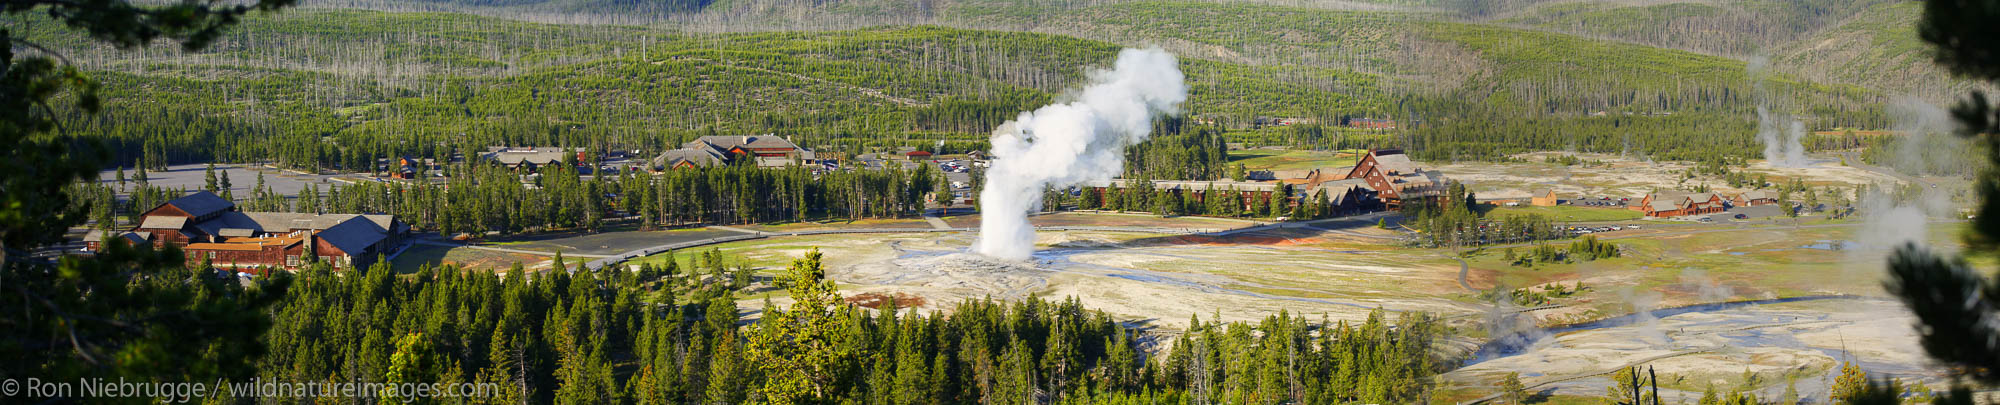 Old Faithful and the Upper Geyser Basin, Yellowstone National Park, Wyoming